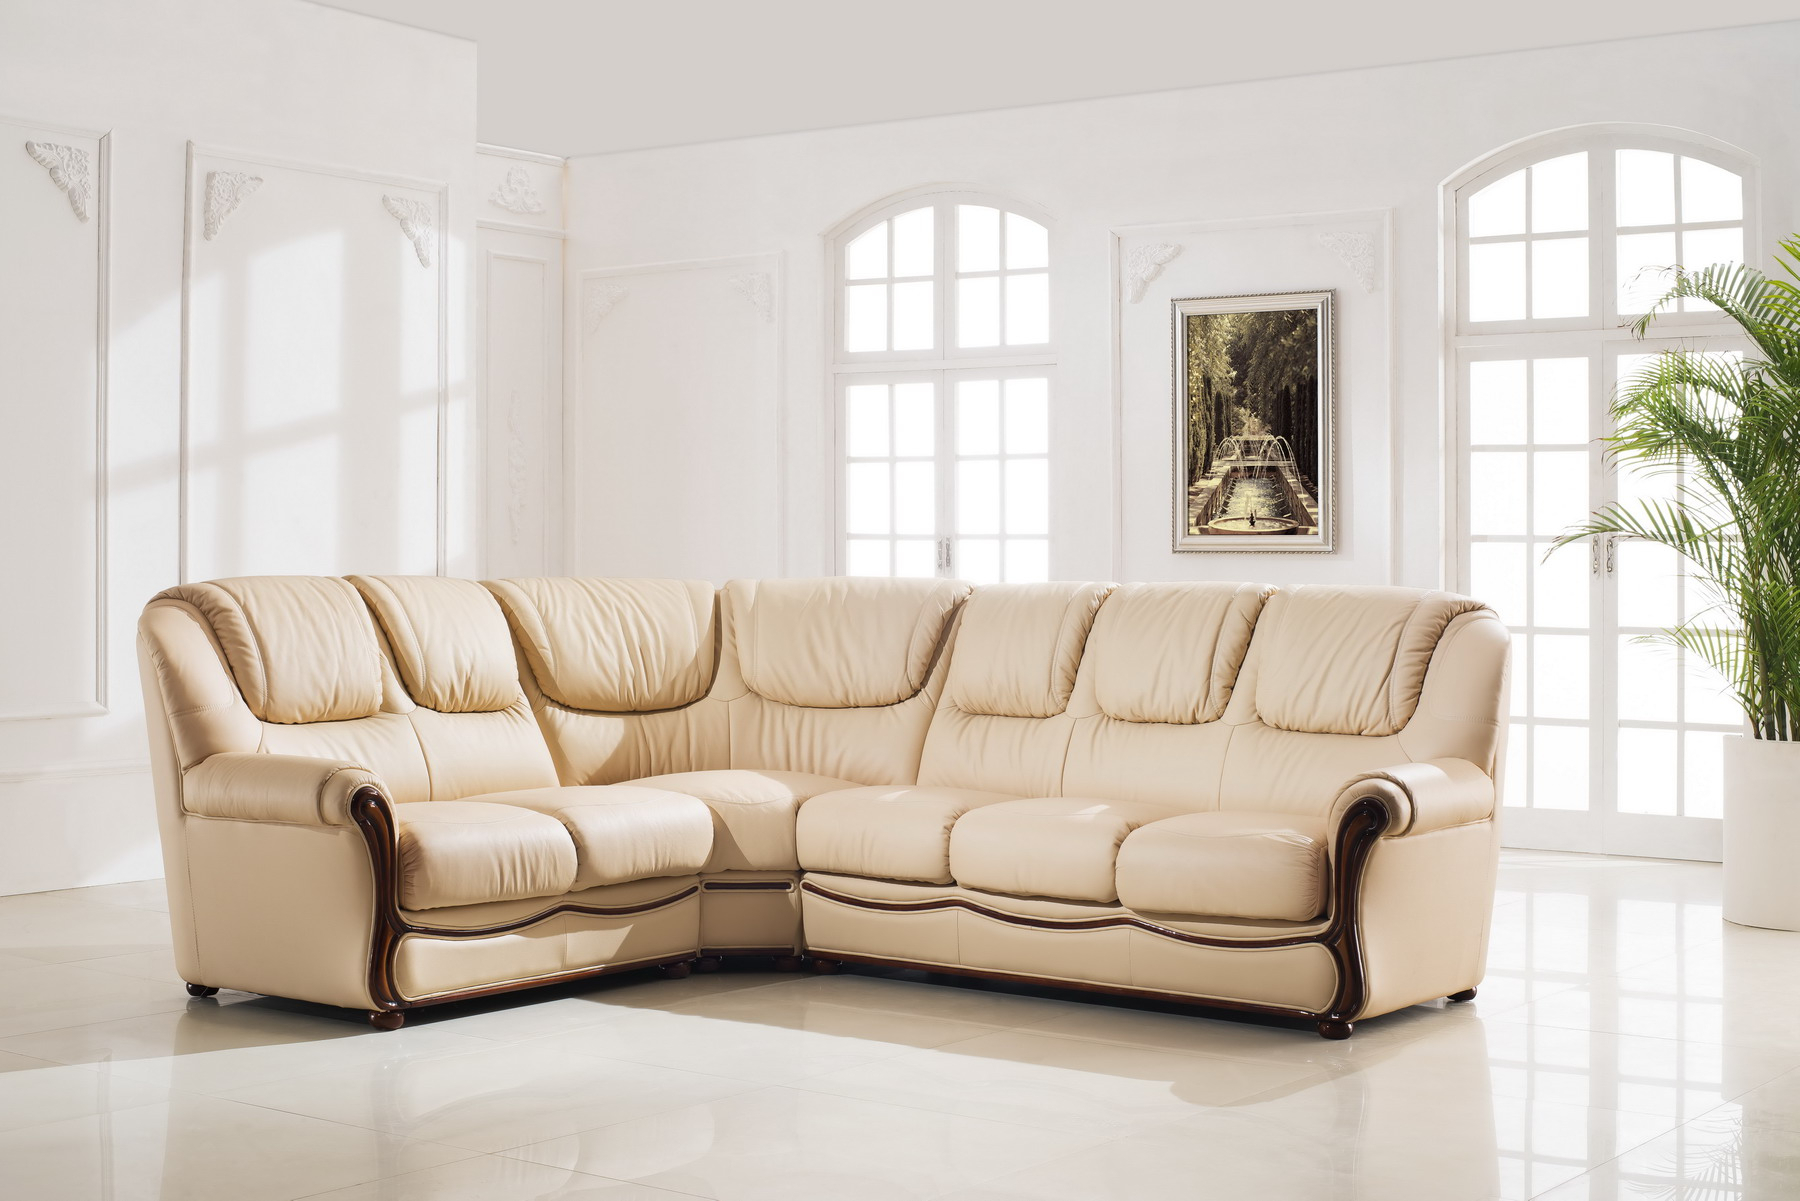 [%esf 102 Top Grain Italian Leather Sectional W Bed With Regard To Latest Matilda 100% Top Grain Leather Chaise Sectional Sofas|matilda 100% Top Grain Leather Chaise Sectional Sofas In Preferred Esf 102 Top Grain Italian Leather Sectional W Bed|latest Matilda 100% Top Grain Leather Chaise Sectional Sofas With Esf 102 Top Grain Italian Leather Sectional W Bed|preferred Esf 102 Top Grain Italian Leather Sectional W Bed For Matilda 100% Top Grain Leather Chaise Sectional Sofas%] (View 3 of 20)